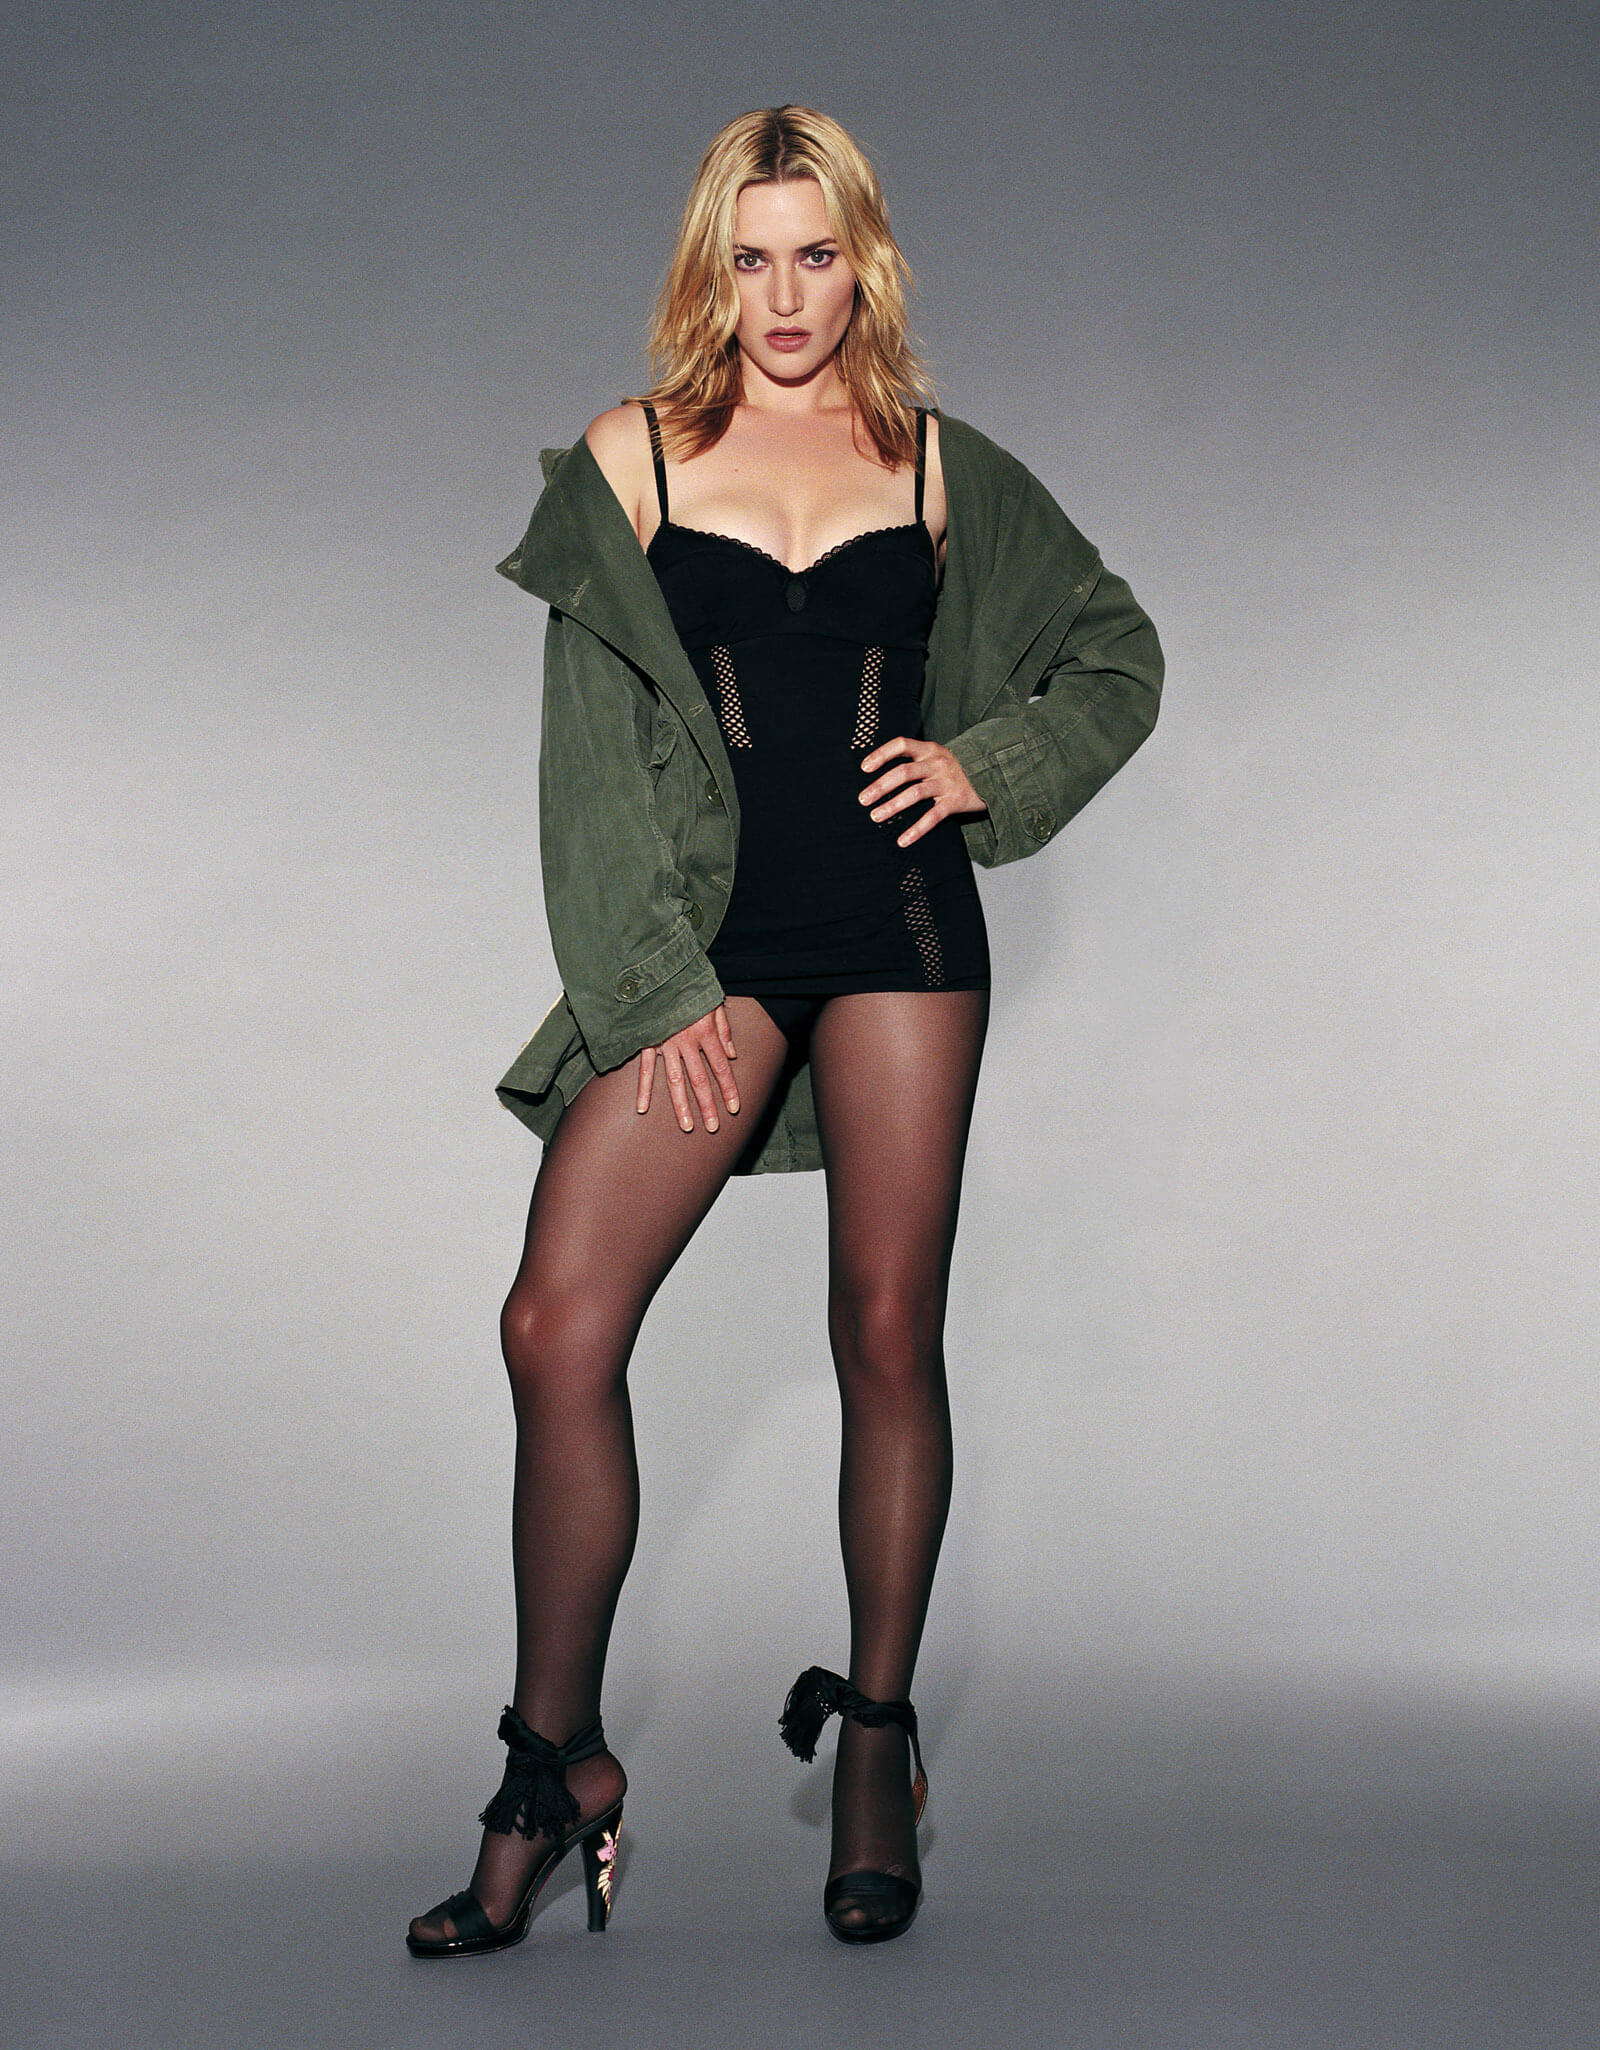 Kate-Winslet sexy legs [pics